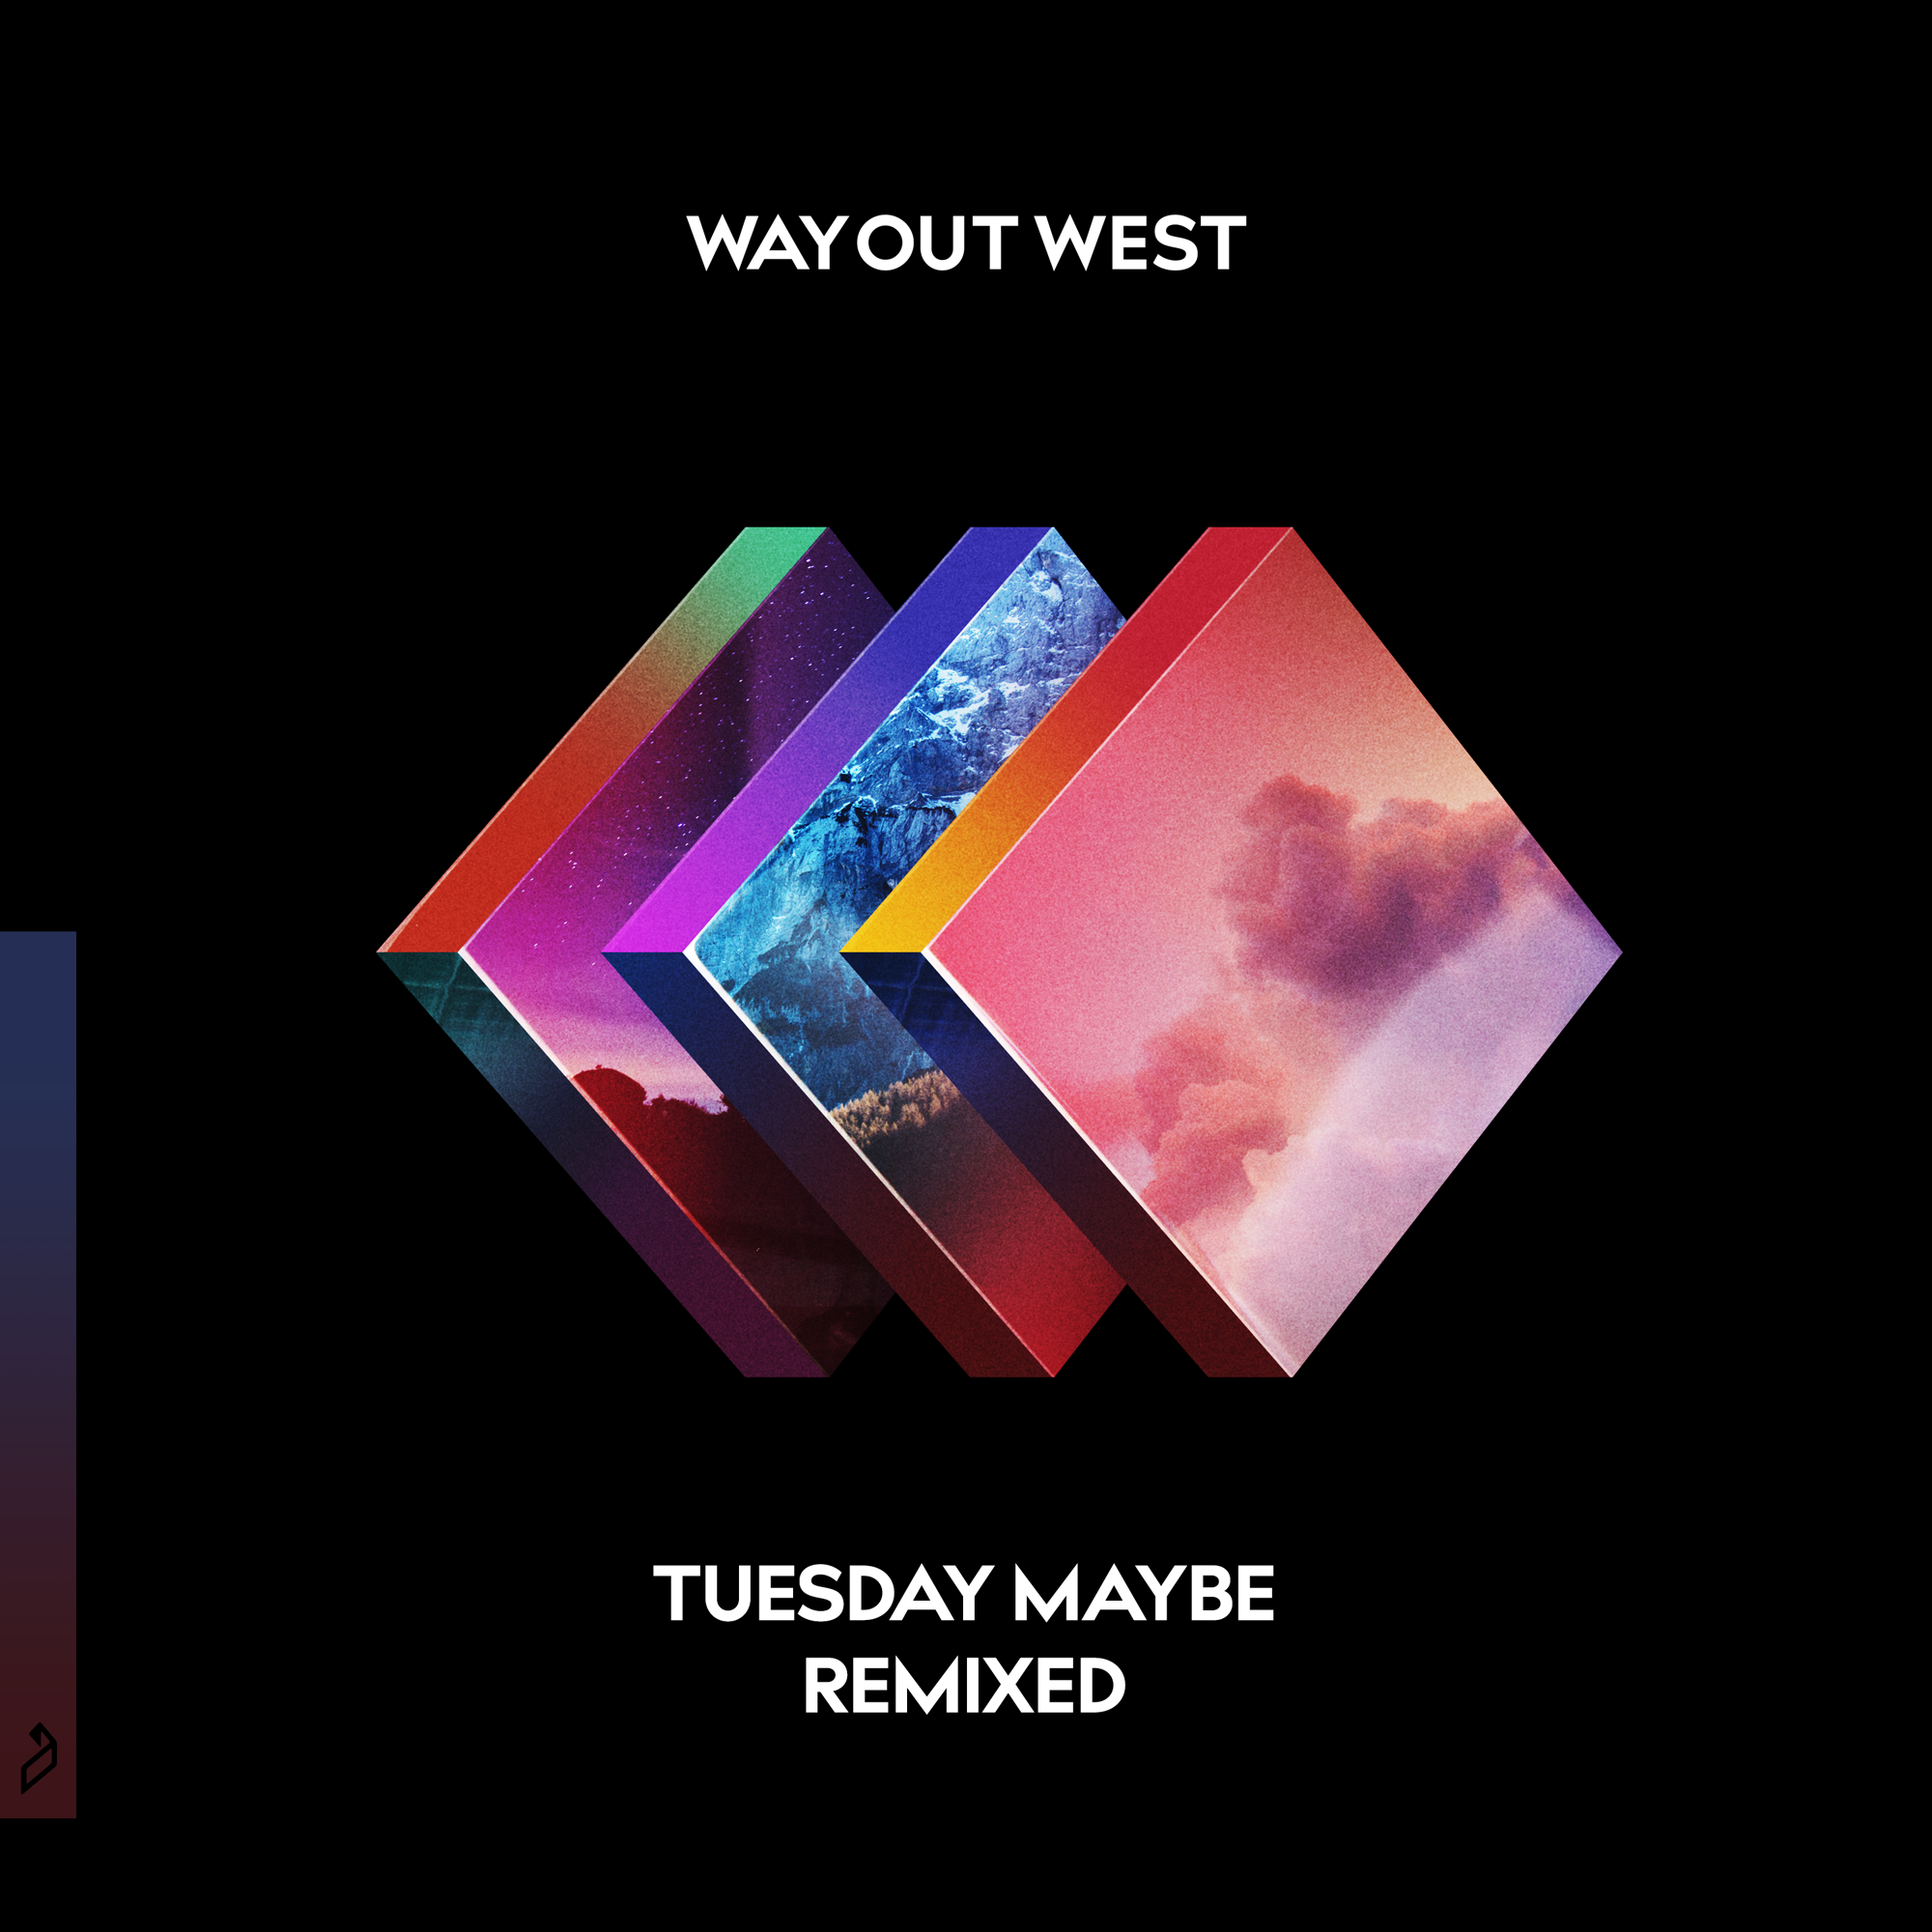 WayOutWest_TM_Remixed-2000x2000.png